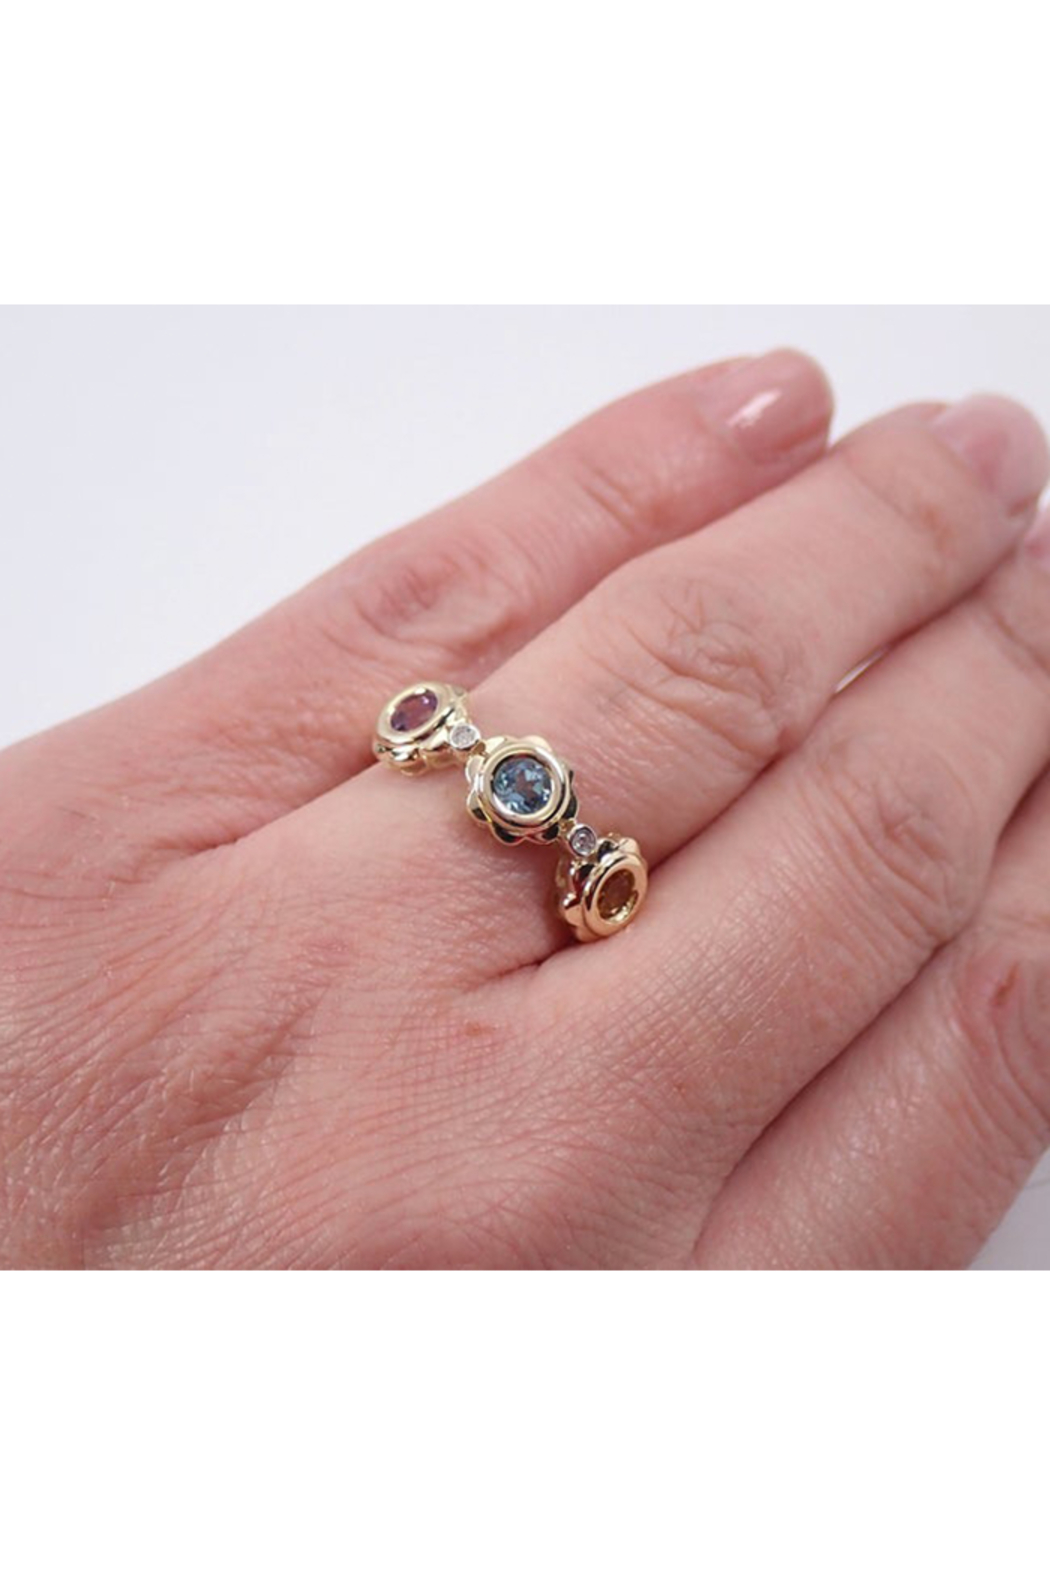 Margolin & Co Yellow Gold Multi Color Flower Wedding Ring Anniversary Band Citrine Blue Topaz Amethyst FREE Sizing - Back Cropped Image